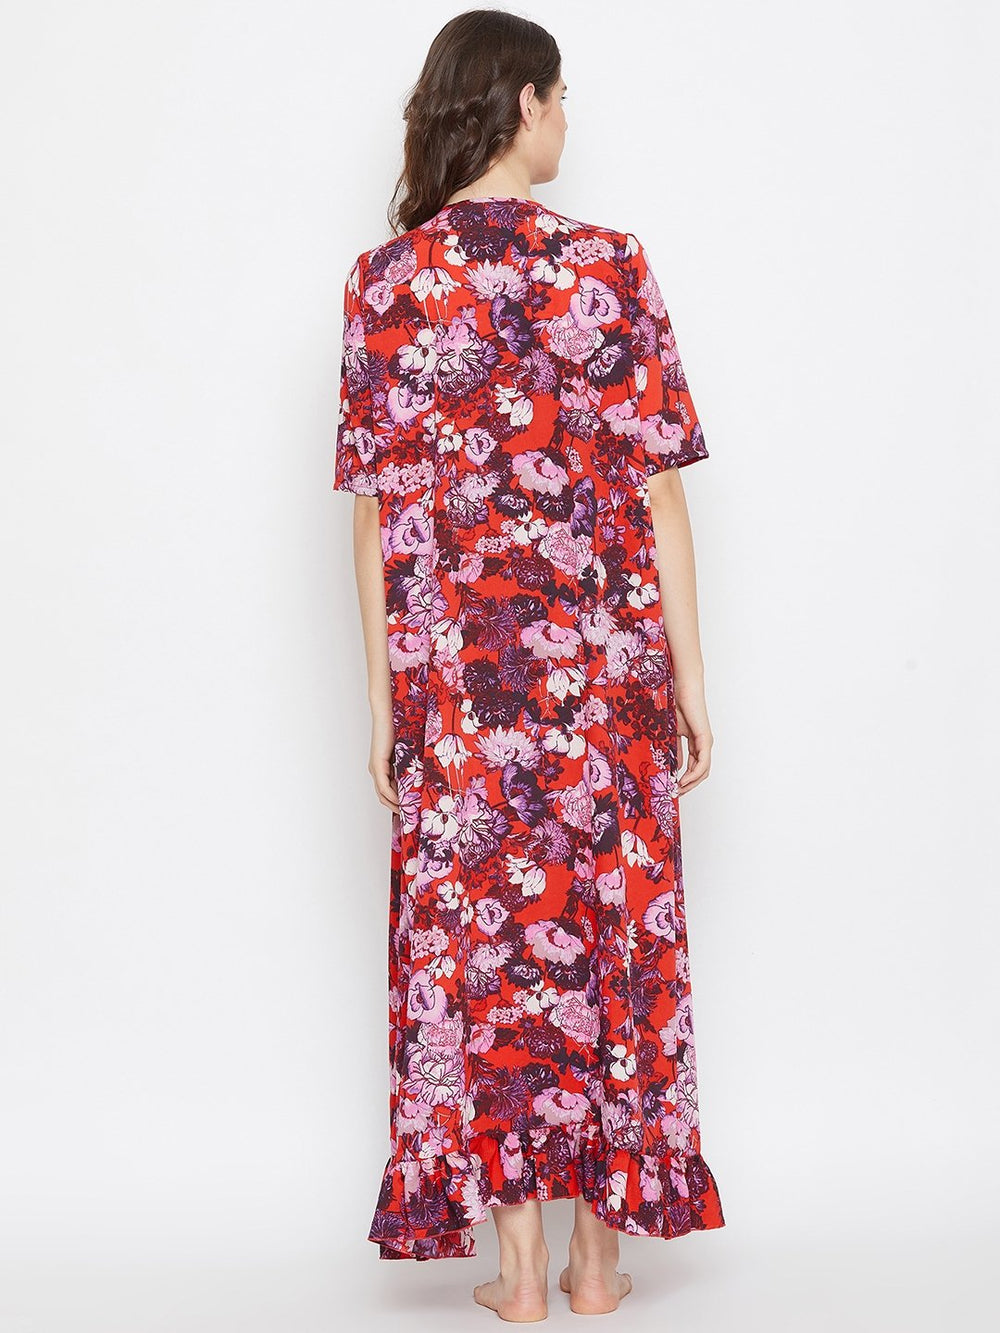 RED FLORAL PRINTED MATERNITY NIGHTDRESS